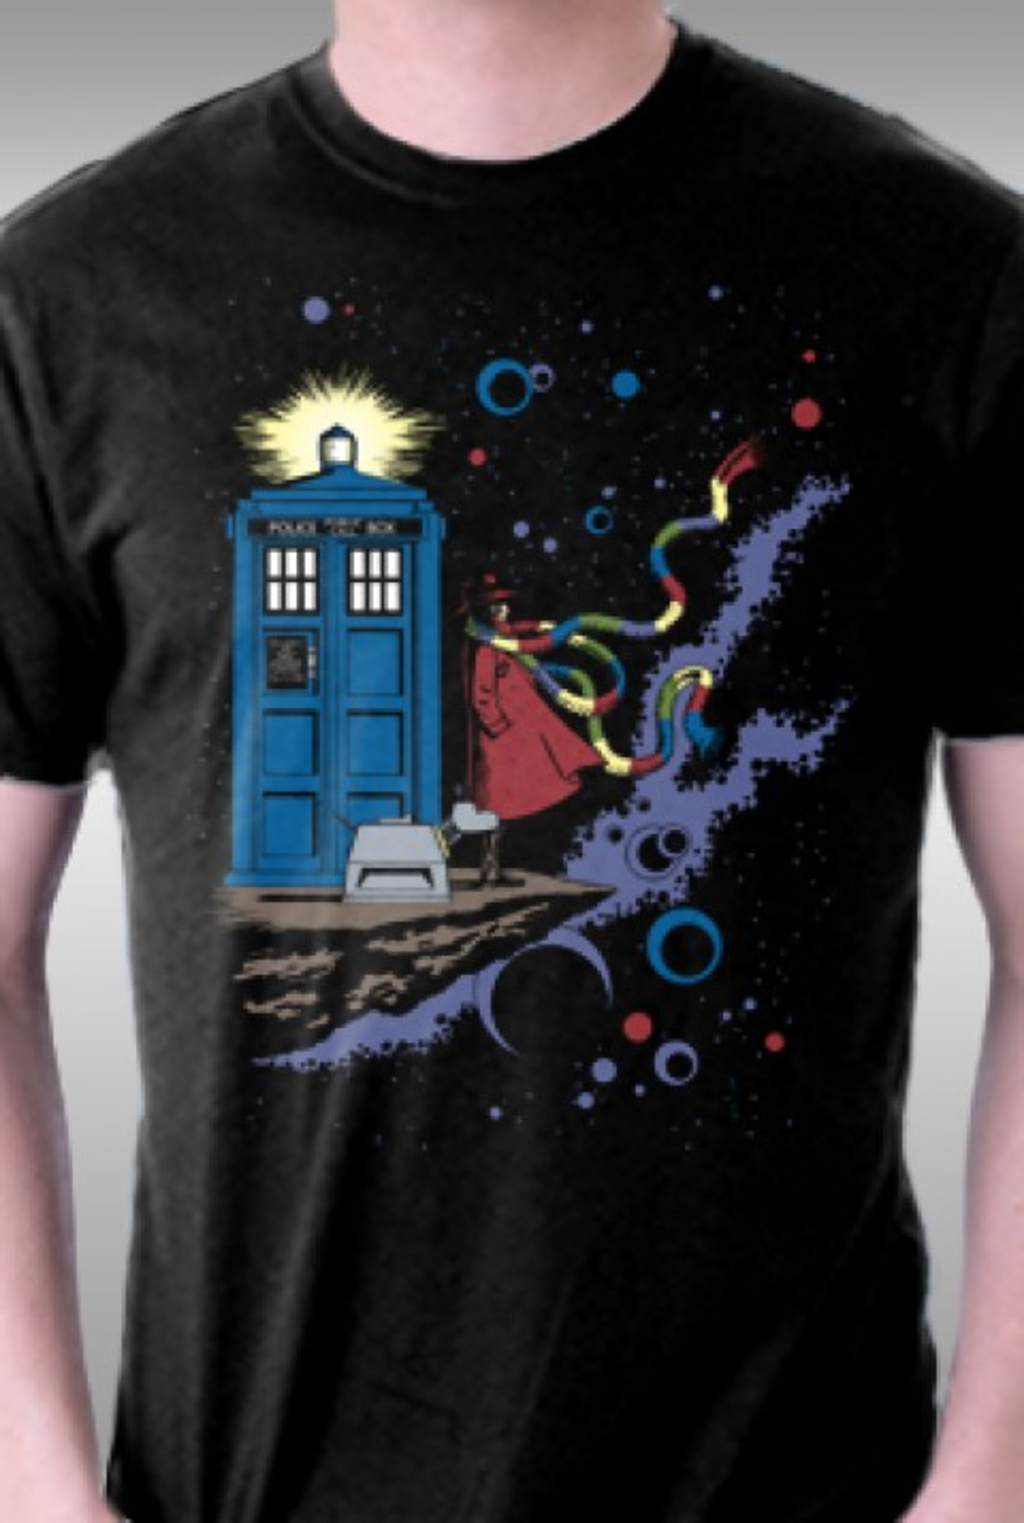 TeeFury: Who's Space